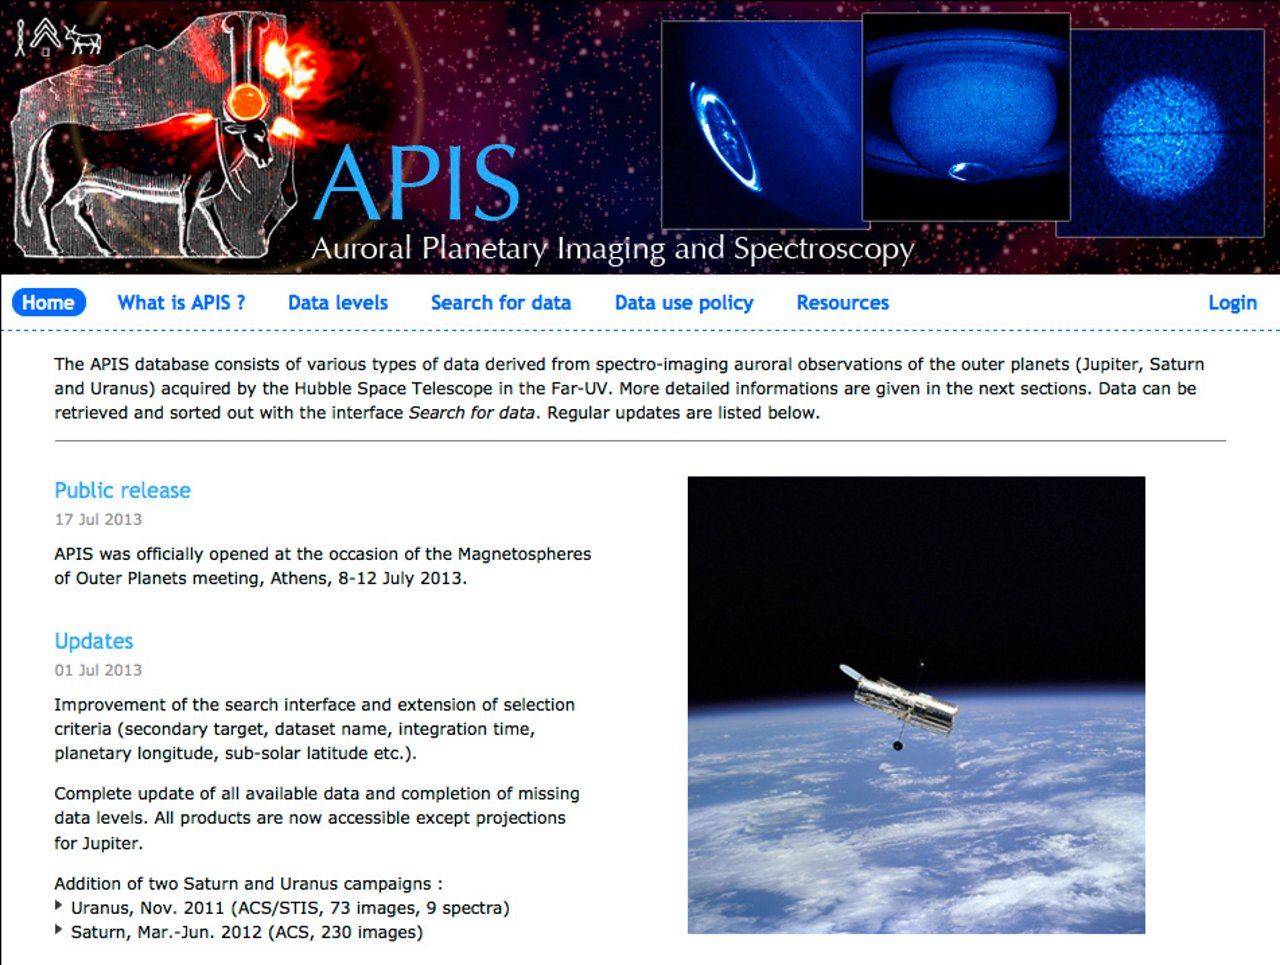 Screenshot of the APIS website